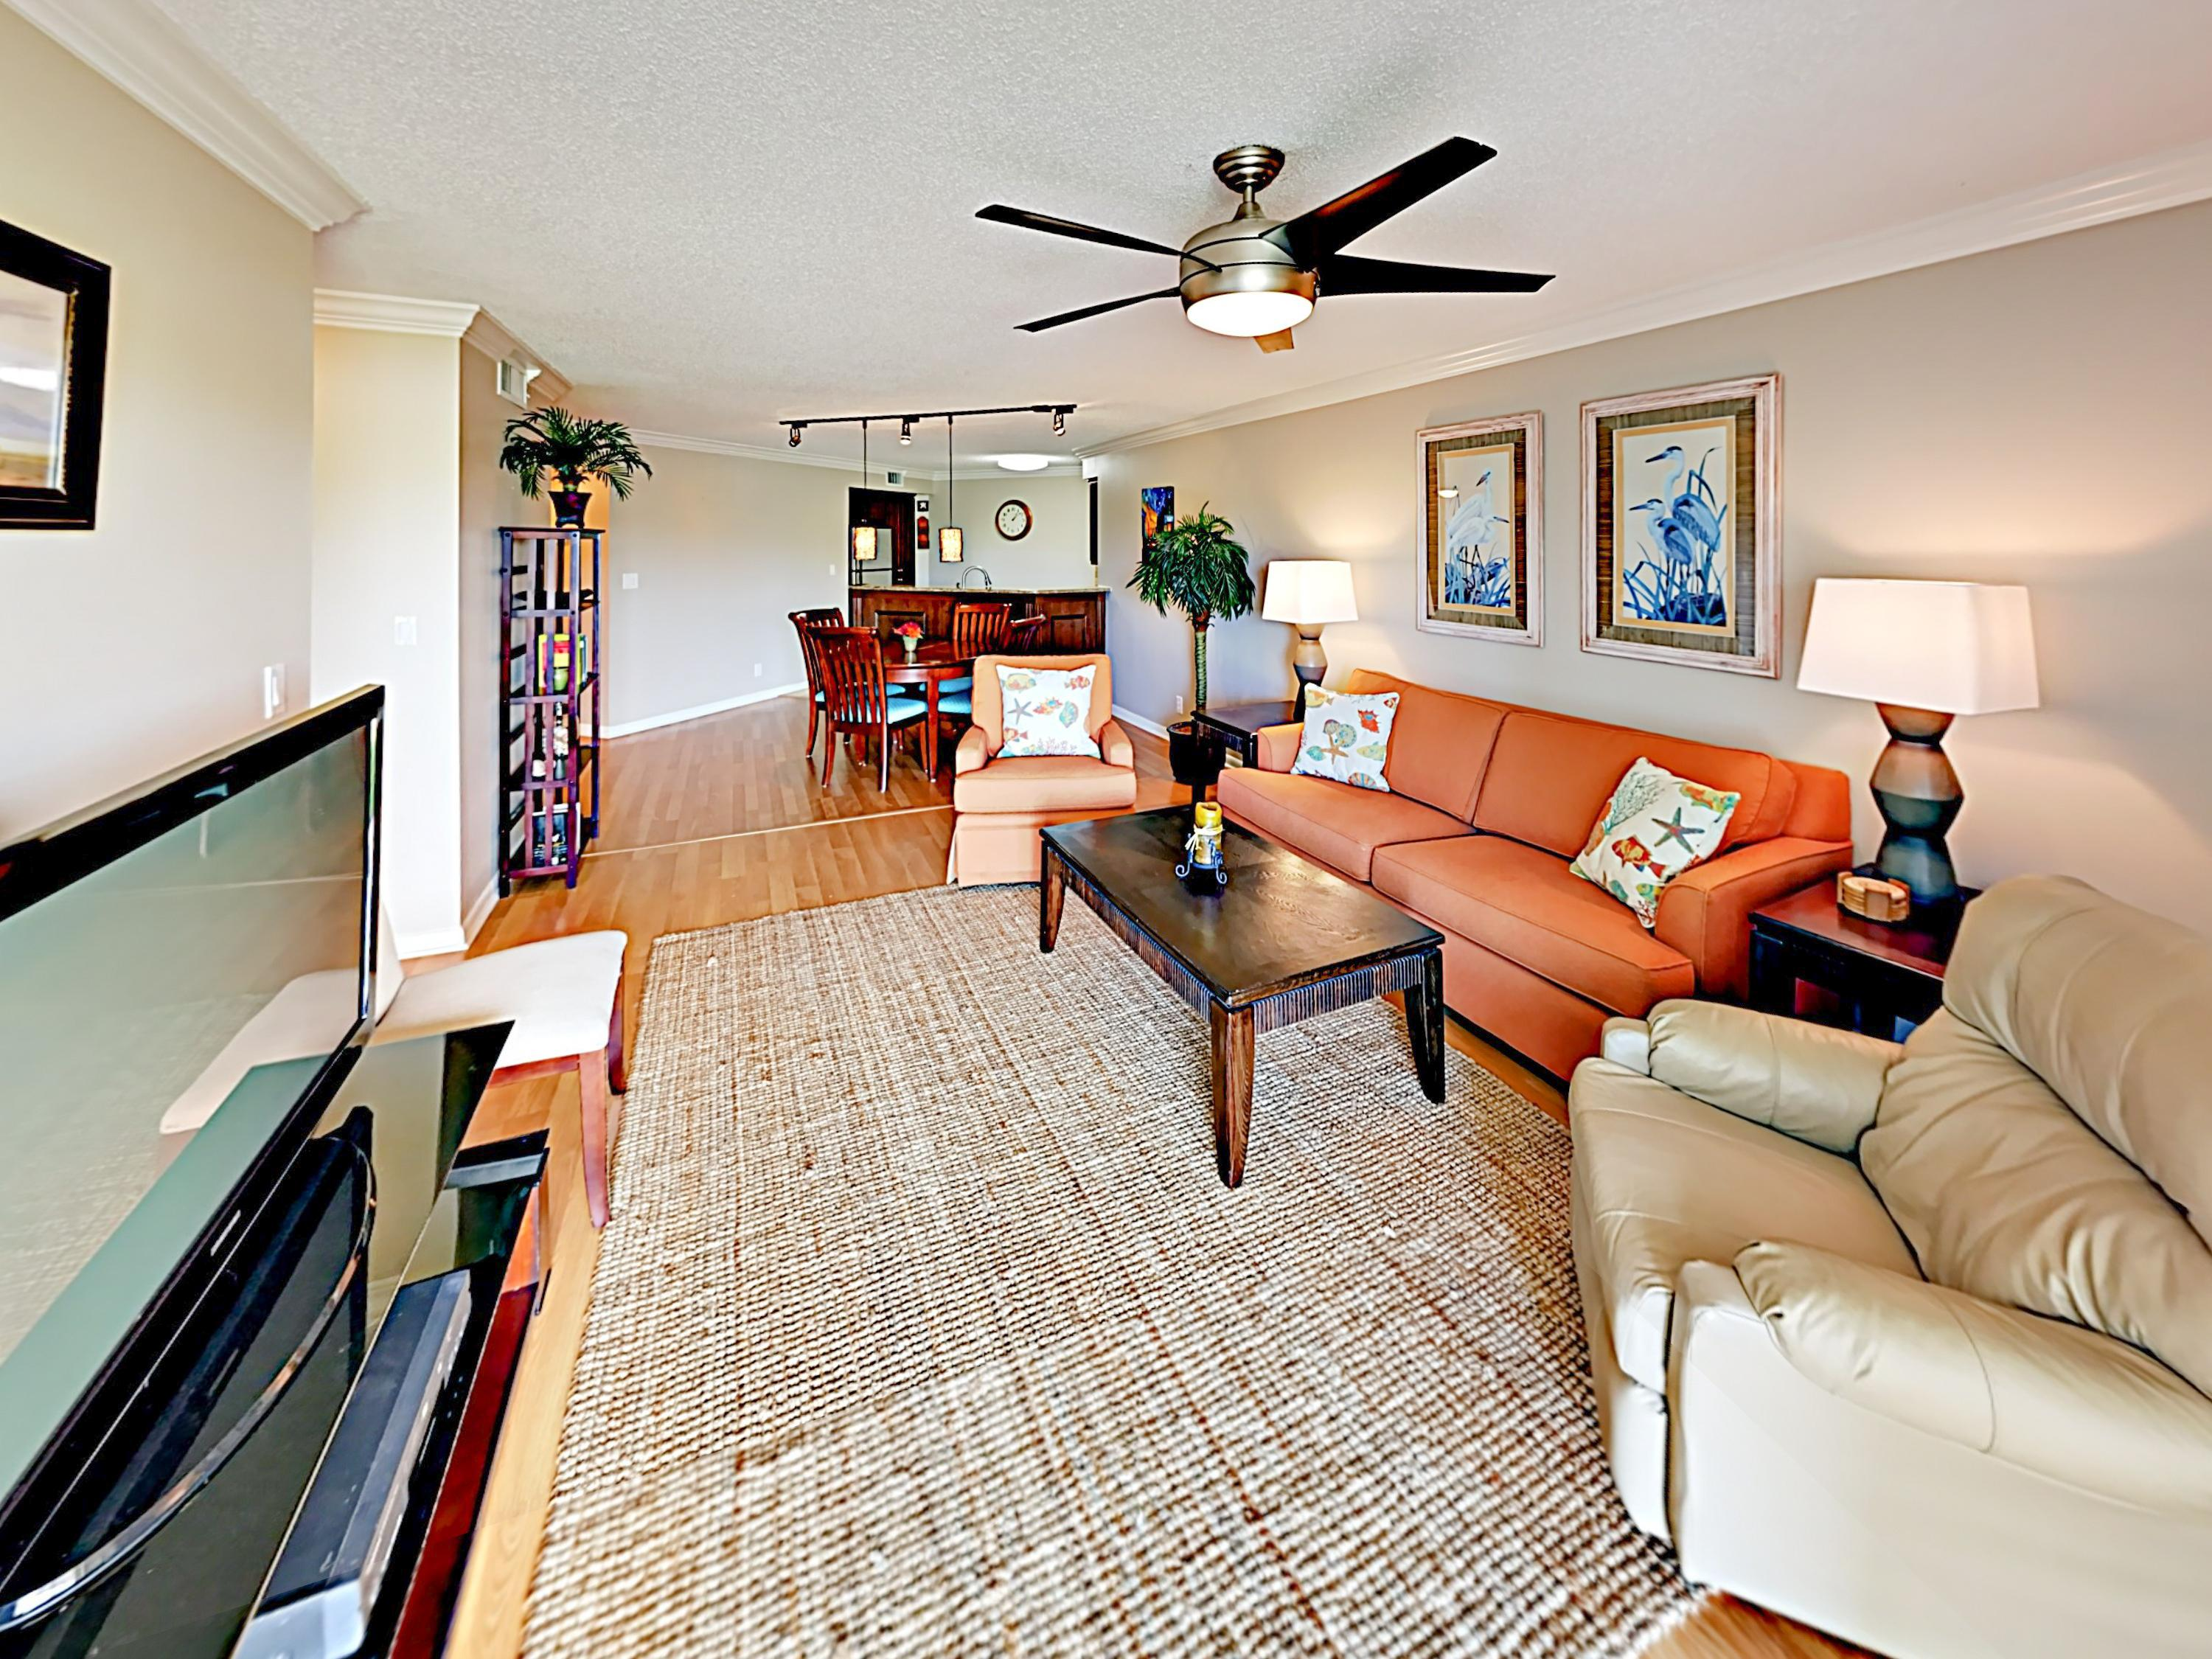 Welcome to St. Petersburg! This condo is professionally managed by TurnKey Vacation Rentals.